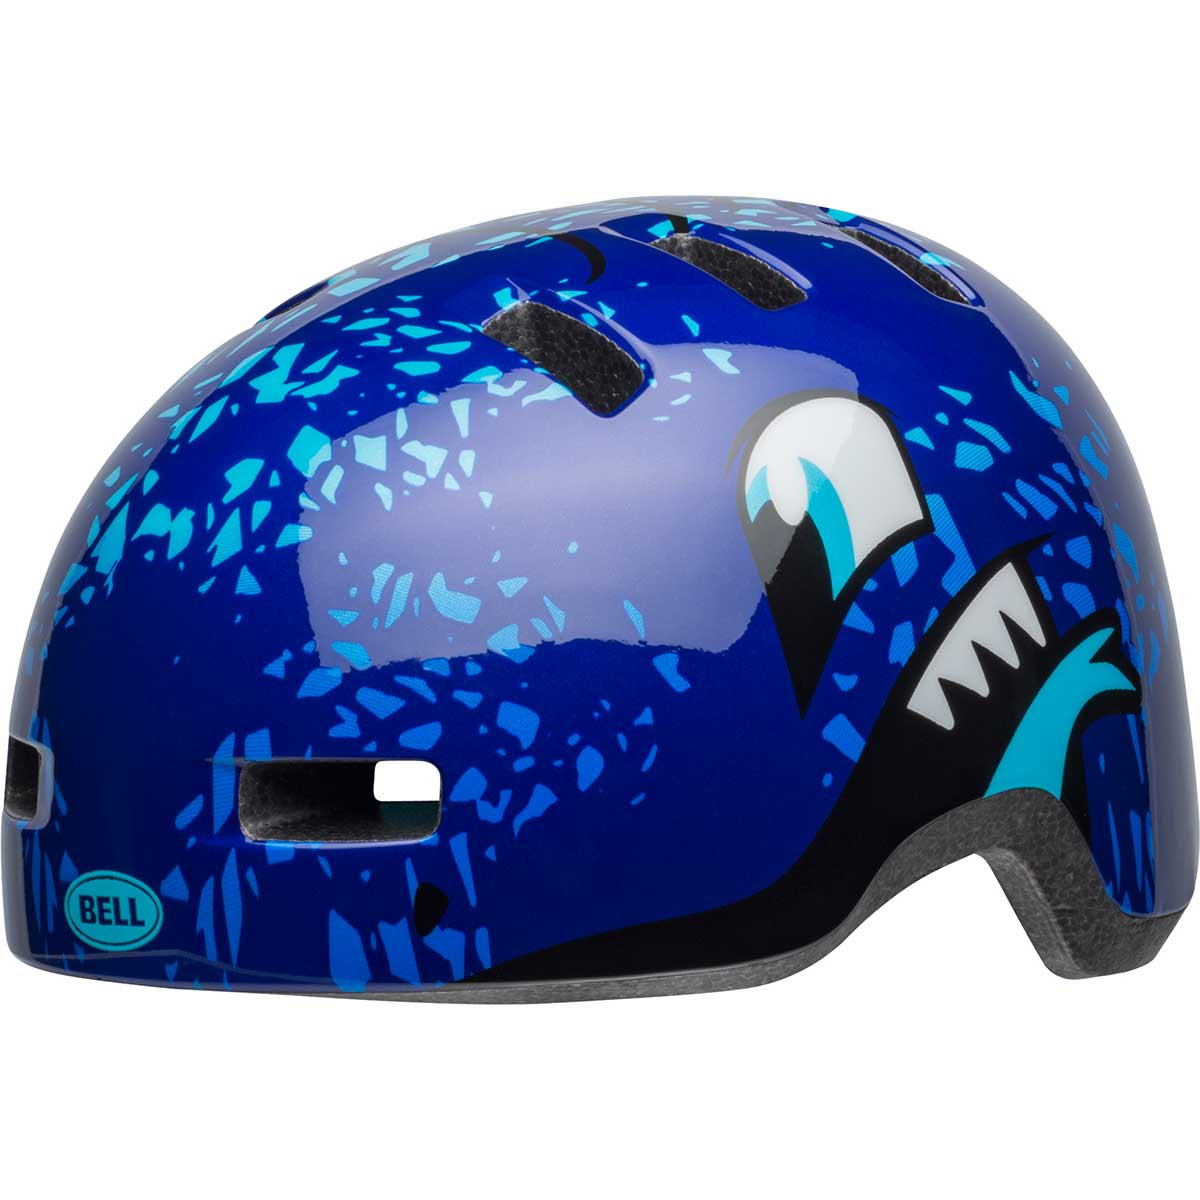 Bell kids' Lil Ripper bike helmet in Blue Eyes